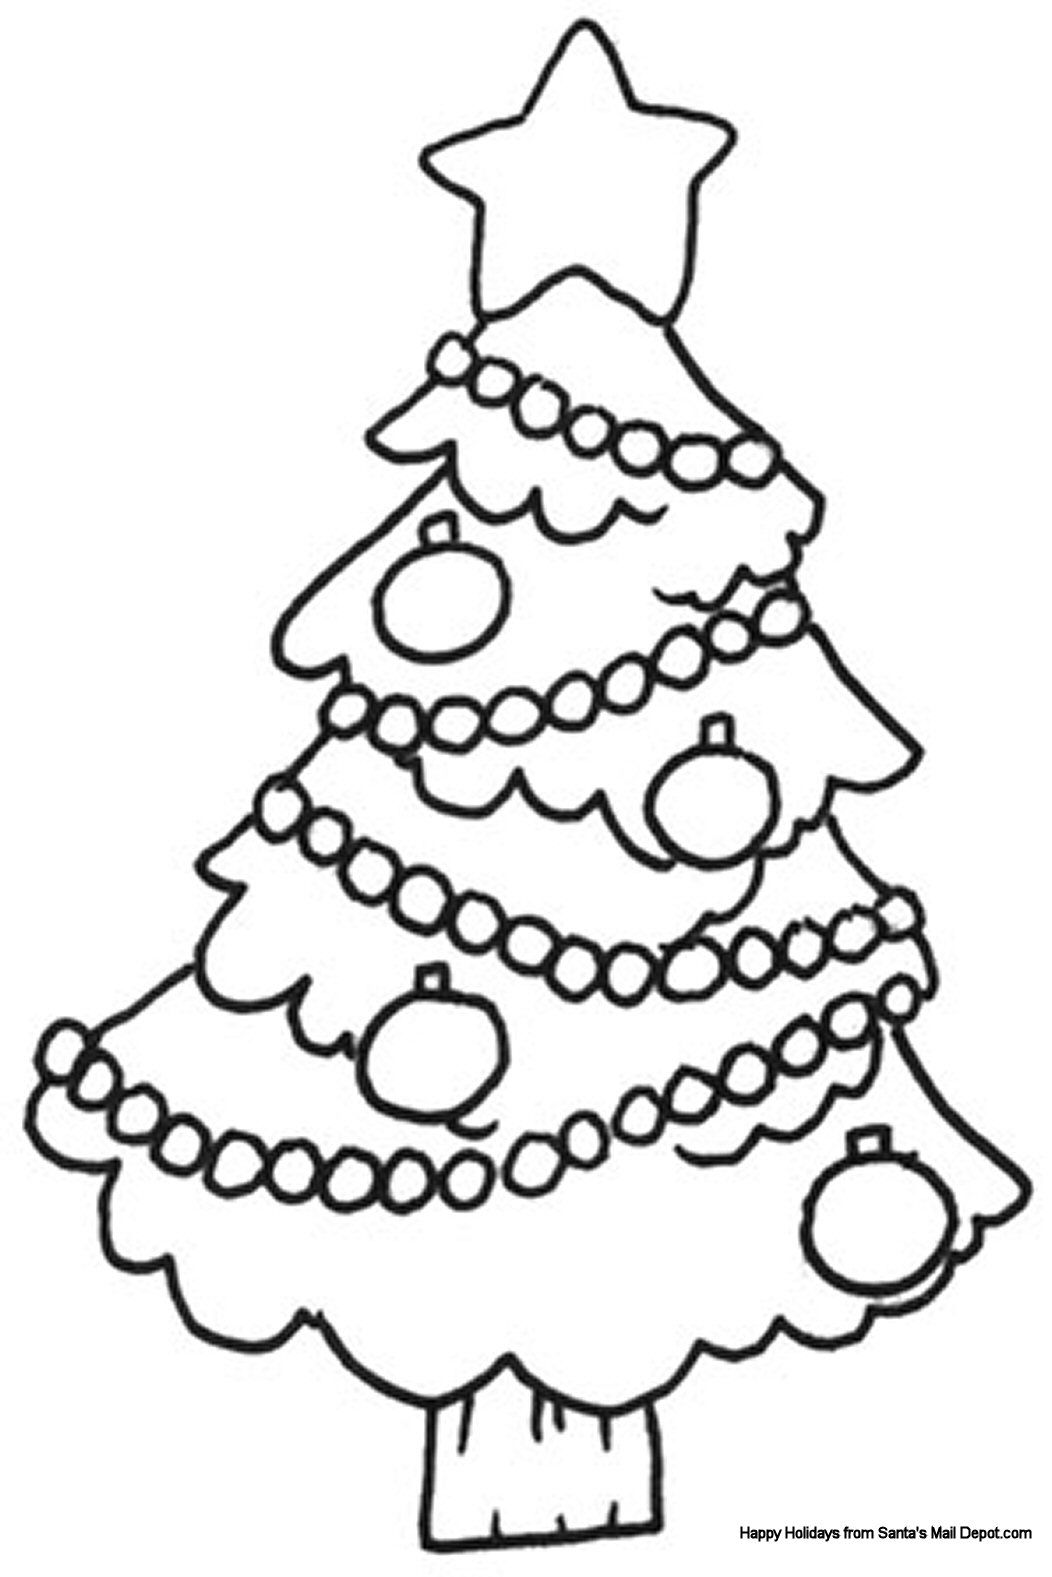 Christmas coloring in pages printable - Christmas Colouring Sheet Free Online Printable Coloring Pages Sheets For Kids Get The Latest Free Christmas Colouring Sheet Images Favorite Coloring